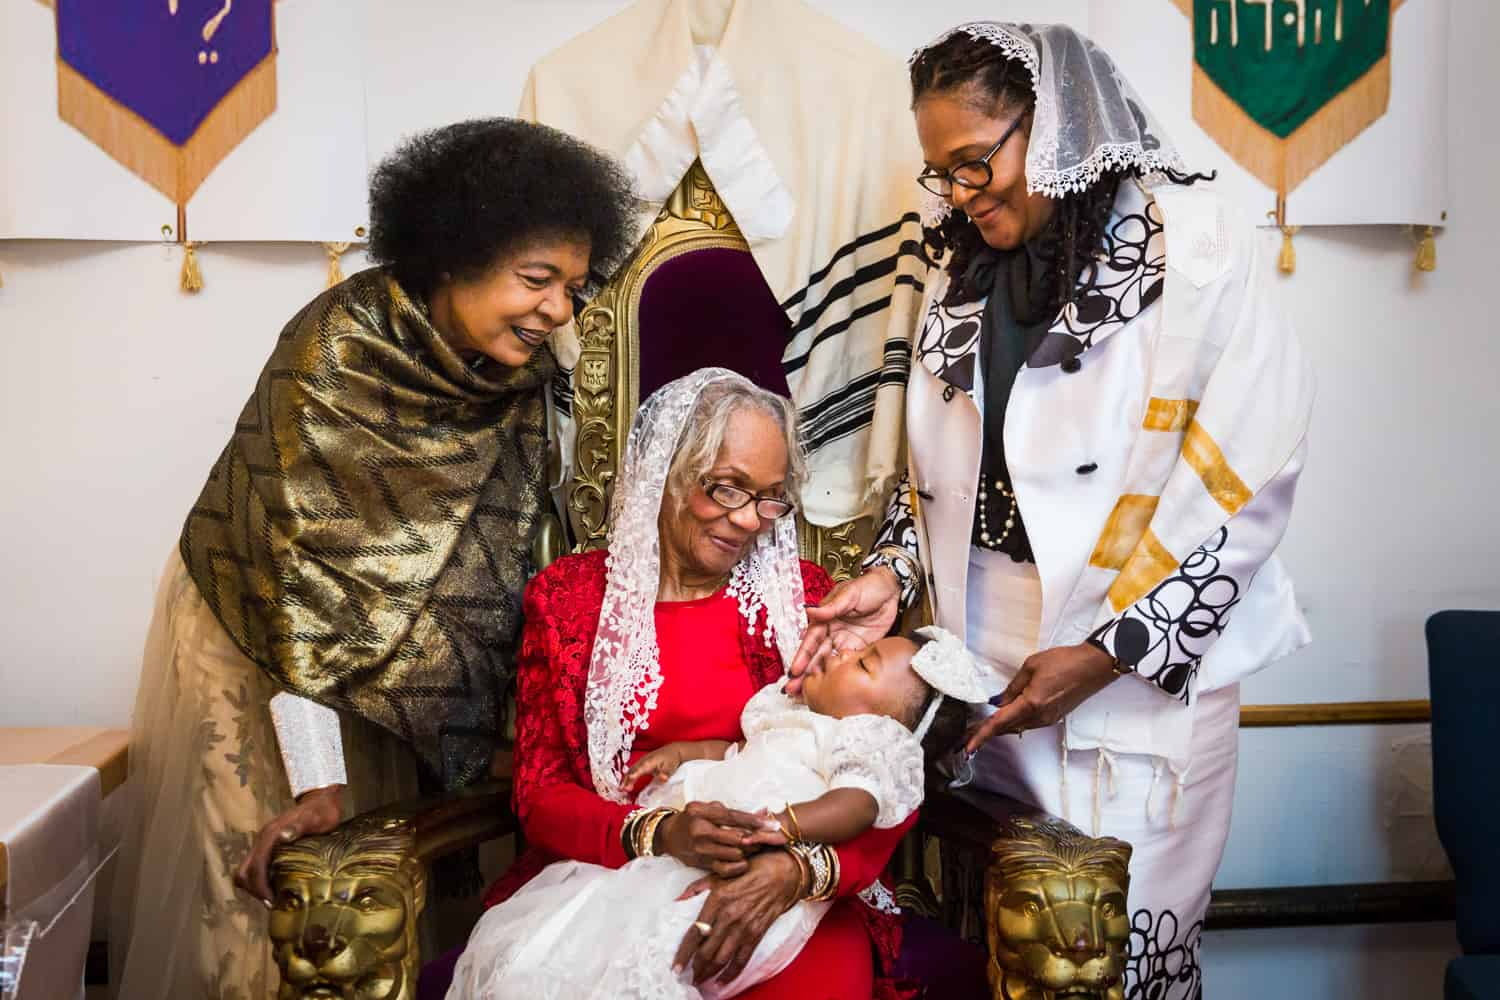 Grandmother holding baby surrounded by two older female family members